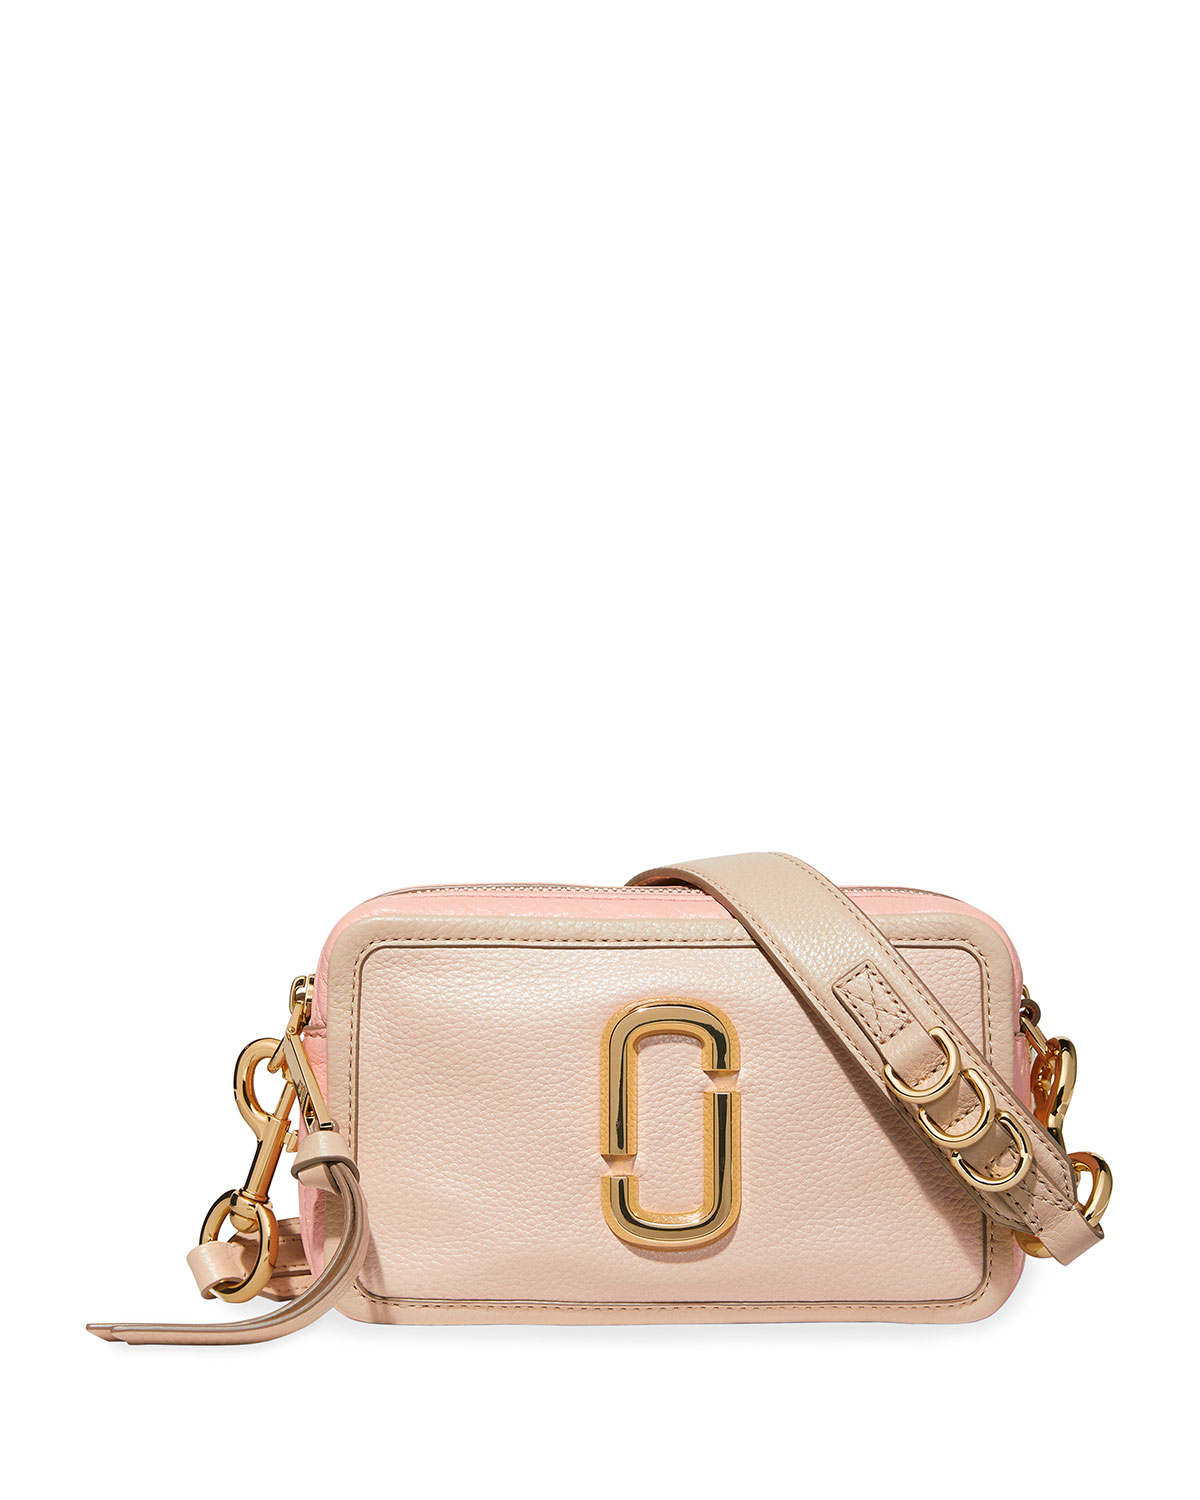 The Marc Jacobs Leathers THE SNAPSHOT 21 LEATHER CROSSBODY BAG